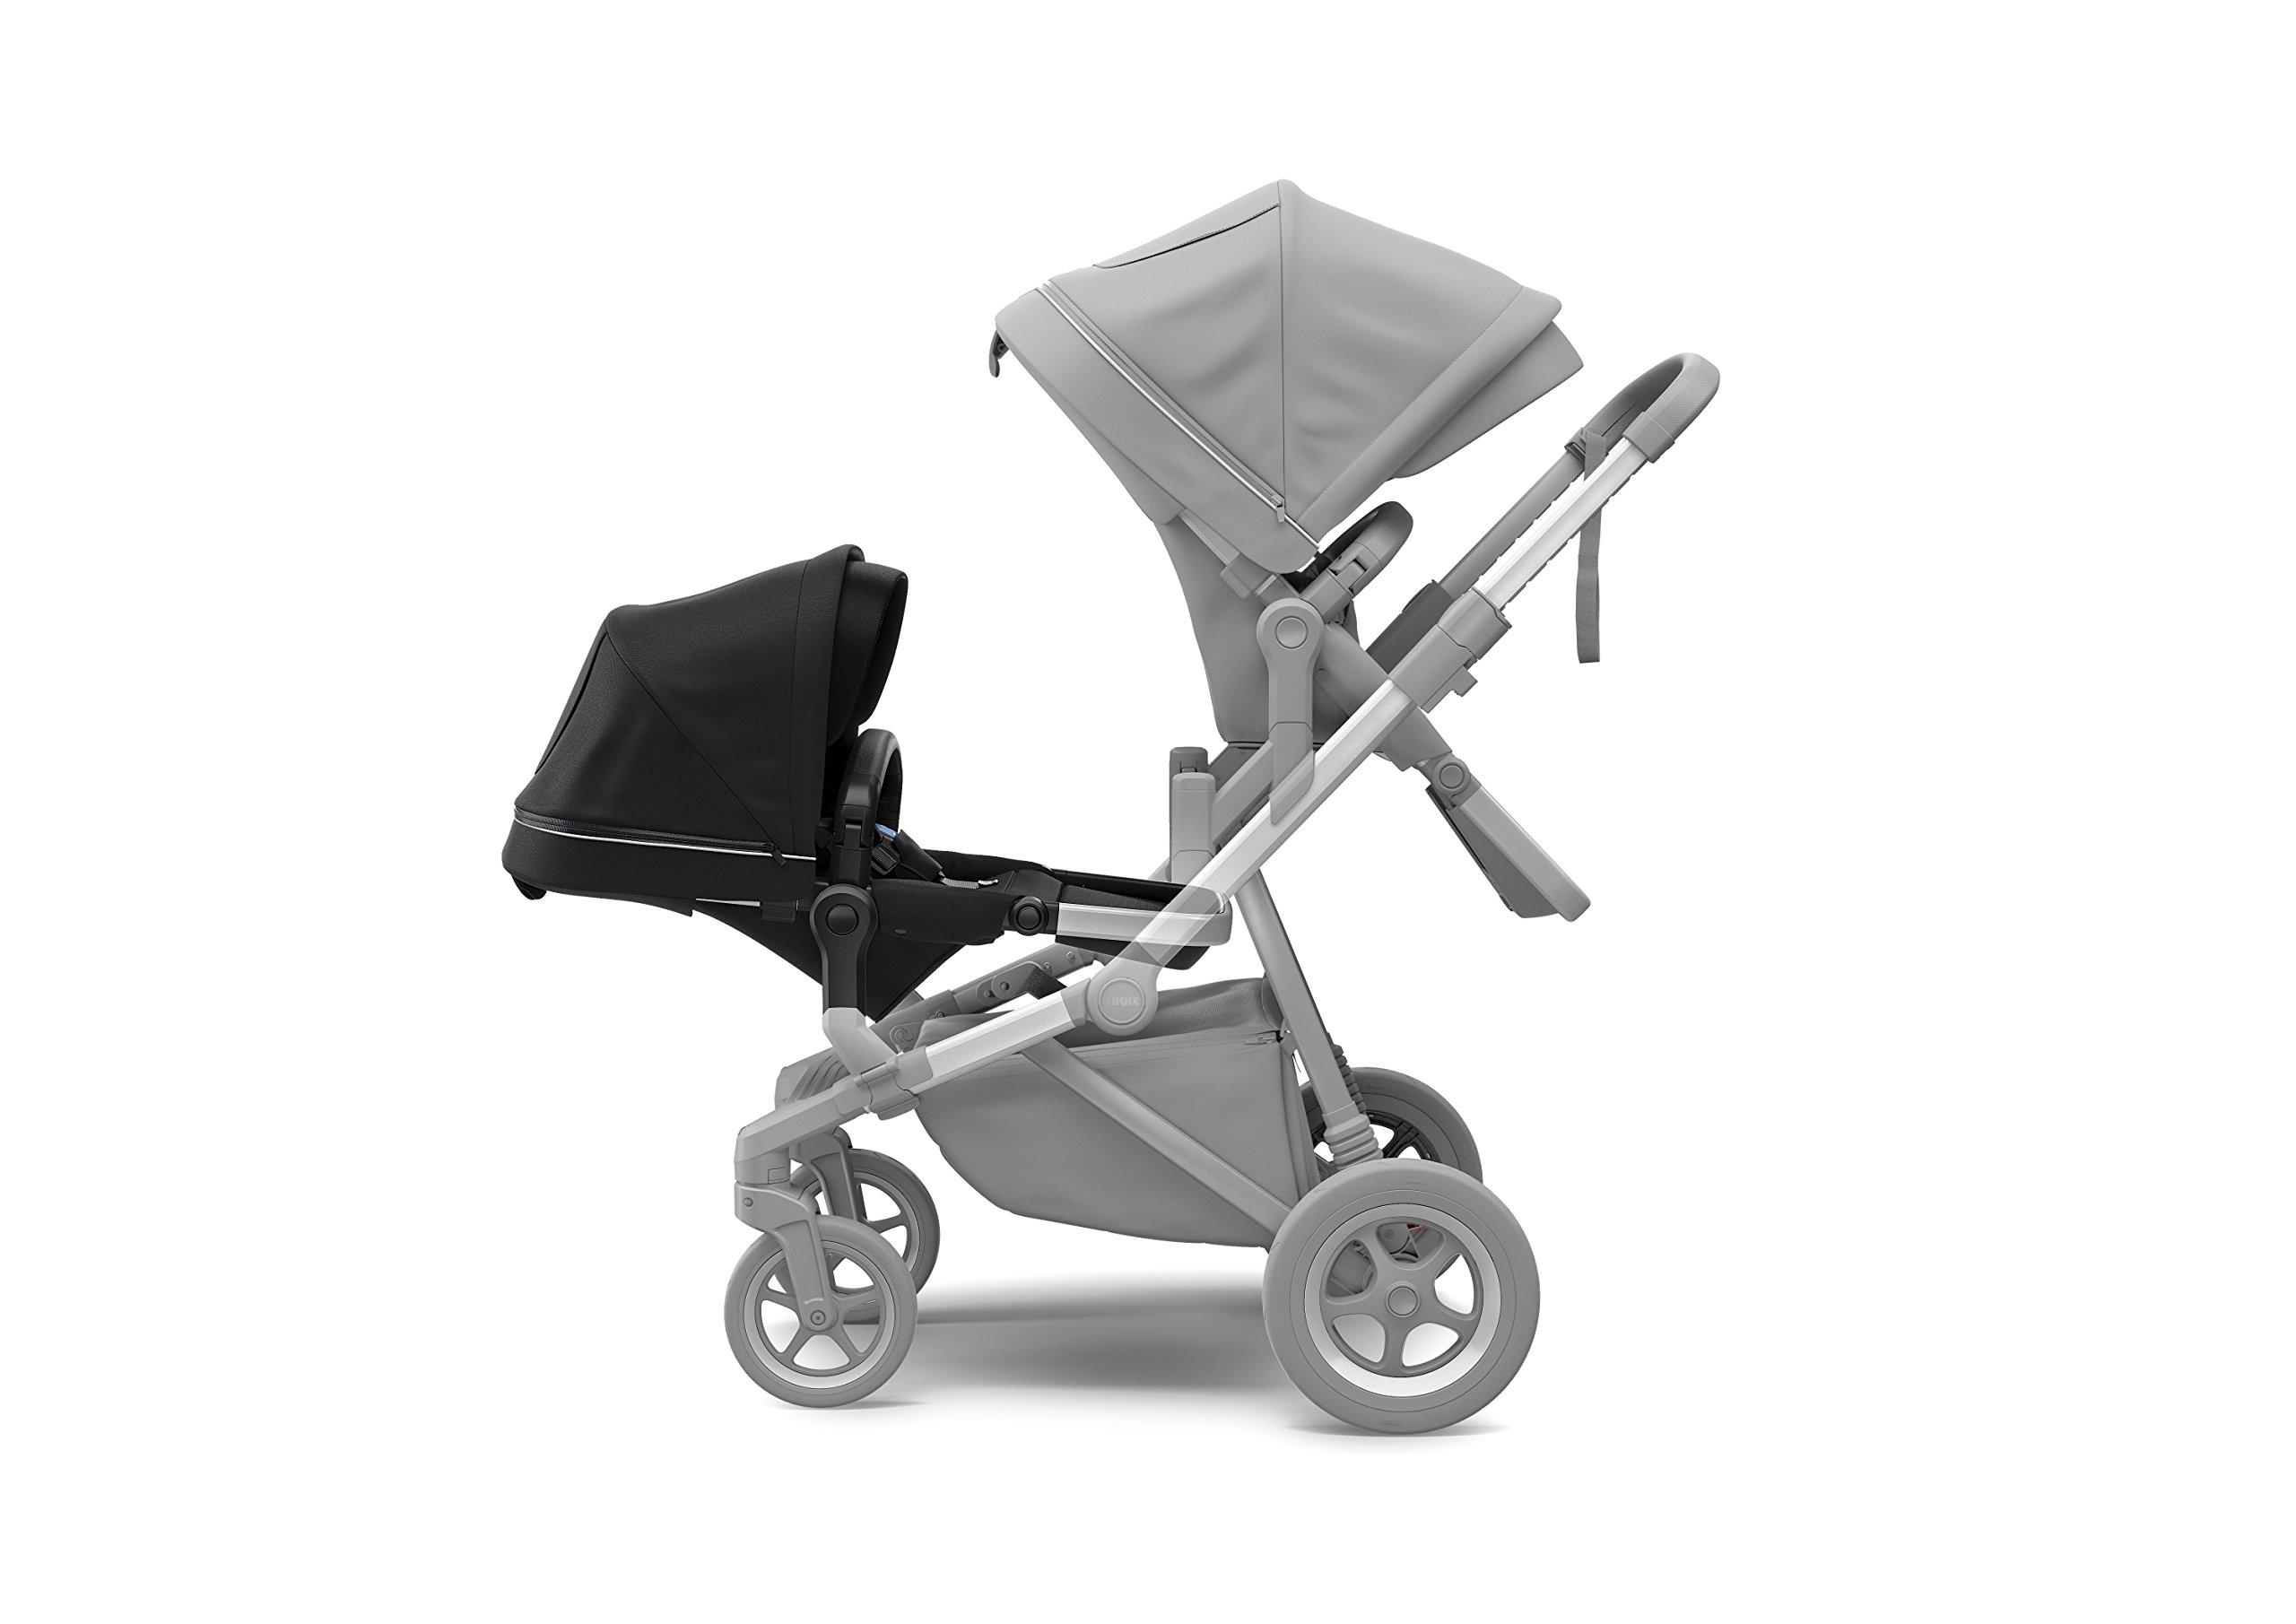 Thule Sleek Sibling Seat, Black Thule Ventilated canopy with peekaboo window and extendable sun visor gives your child a pleasant ride in any weather and provides UV protection (UPF 50+) Comfortable large seating area, with generous sitting height and foot well Reversible seat for parent- or forward-facing position 3